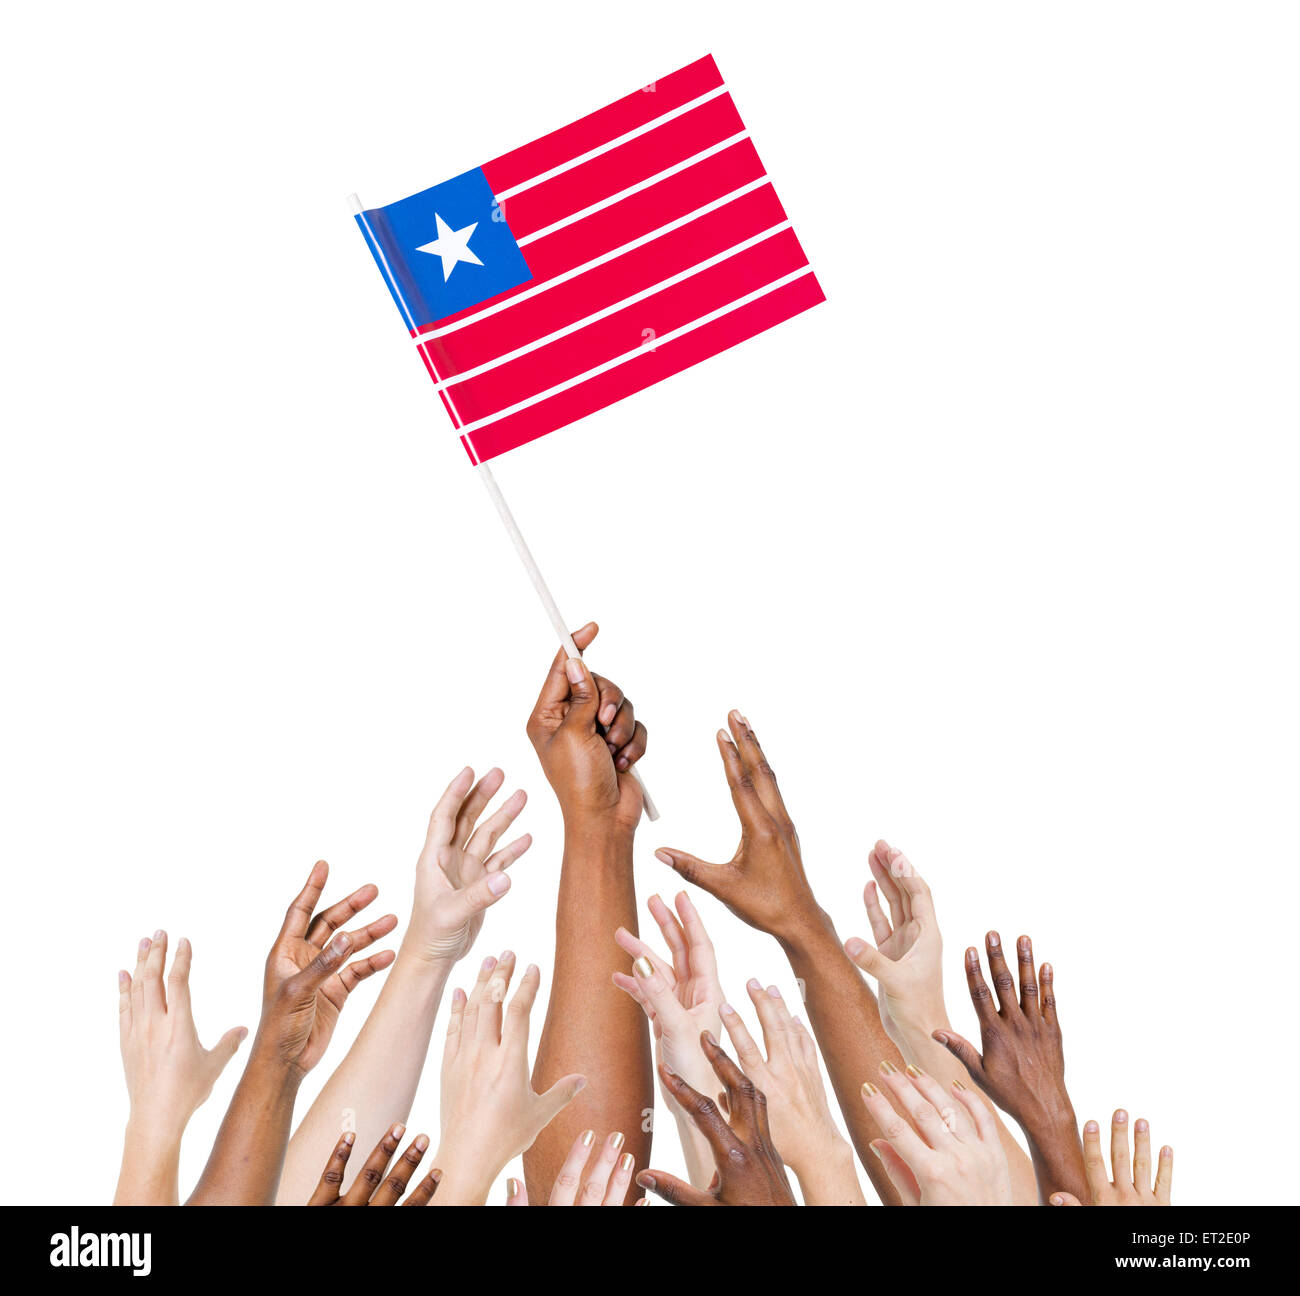 Group of multi-ethnic people reaching for and holding the flag of Liberia. - Stock Image